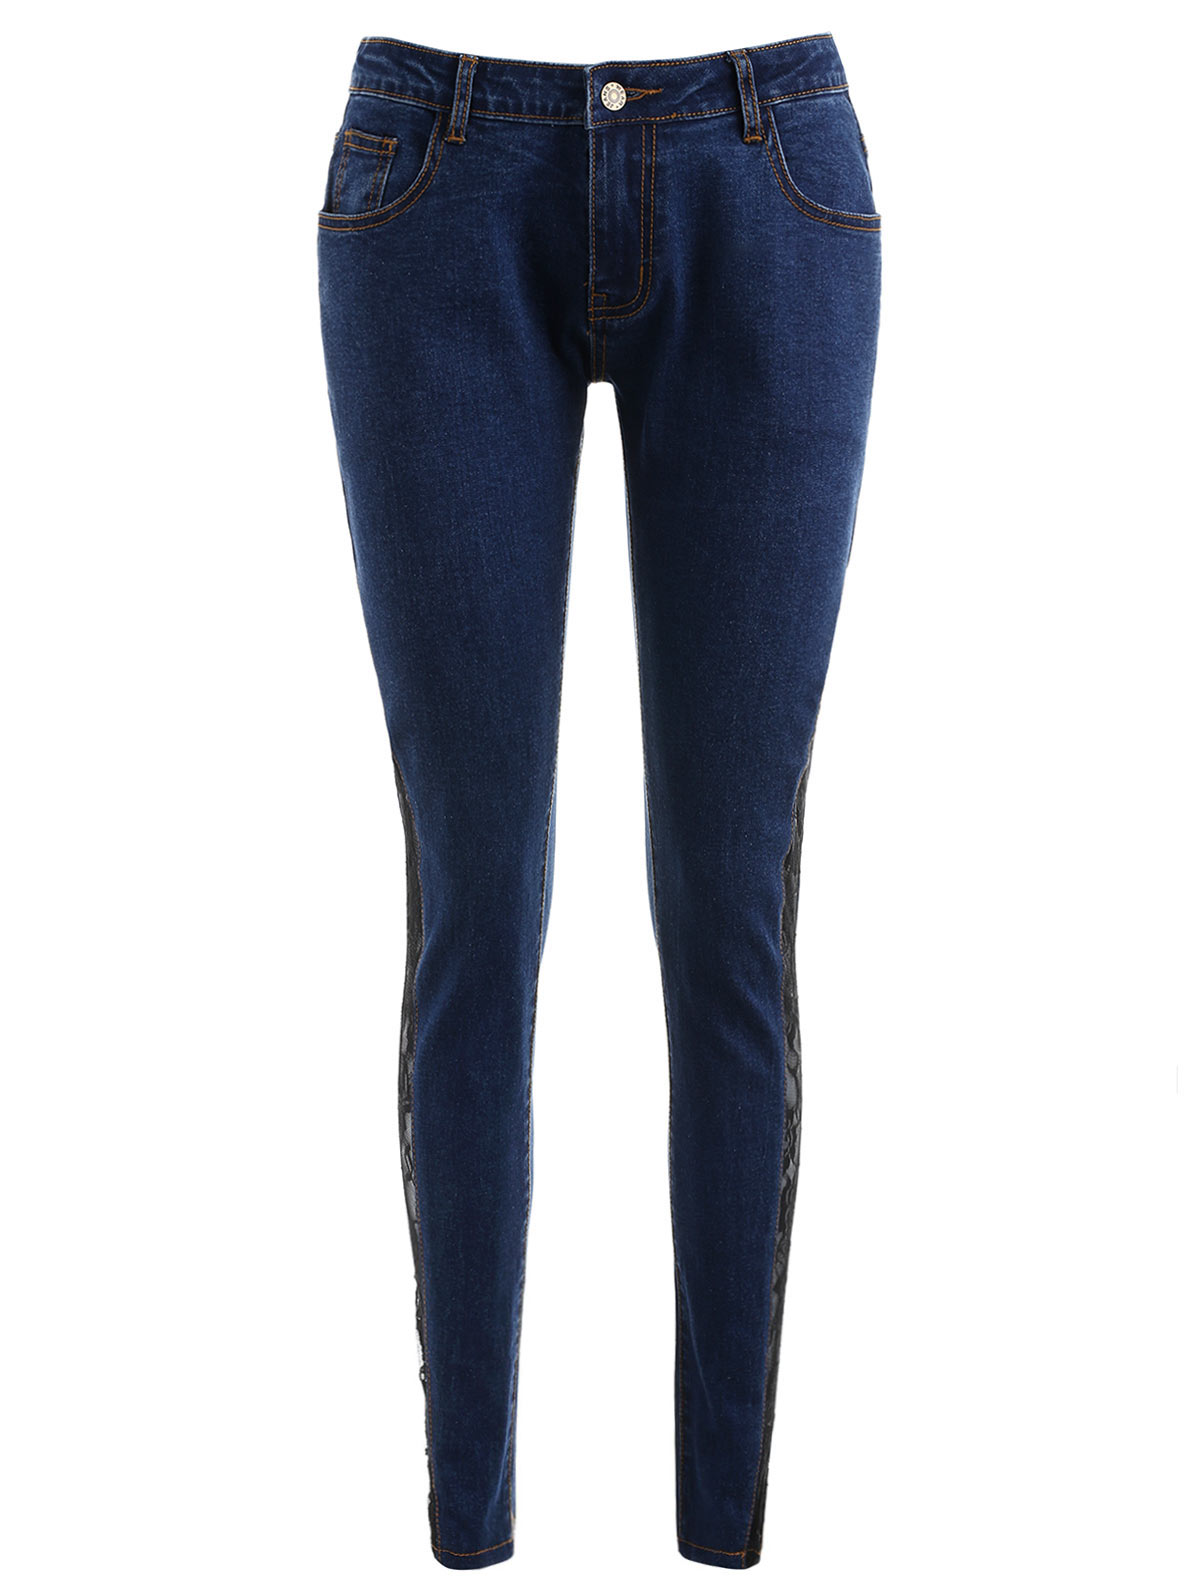 9231c4aca19 2019 Wipalo Women Jeans Plus Size Sheer Lace Side Low Waist Jeans Slim  Casual Skinny Lace Panel Pencil Denim See Through Pants From Chencloth66